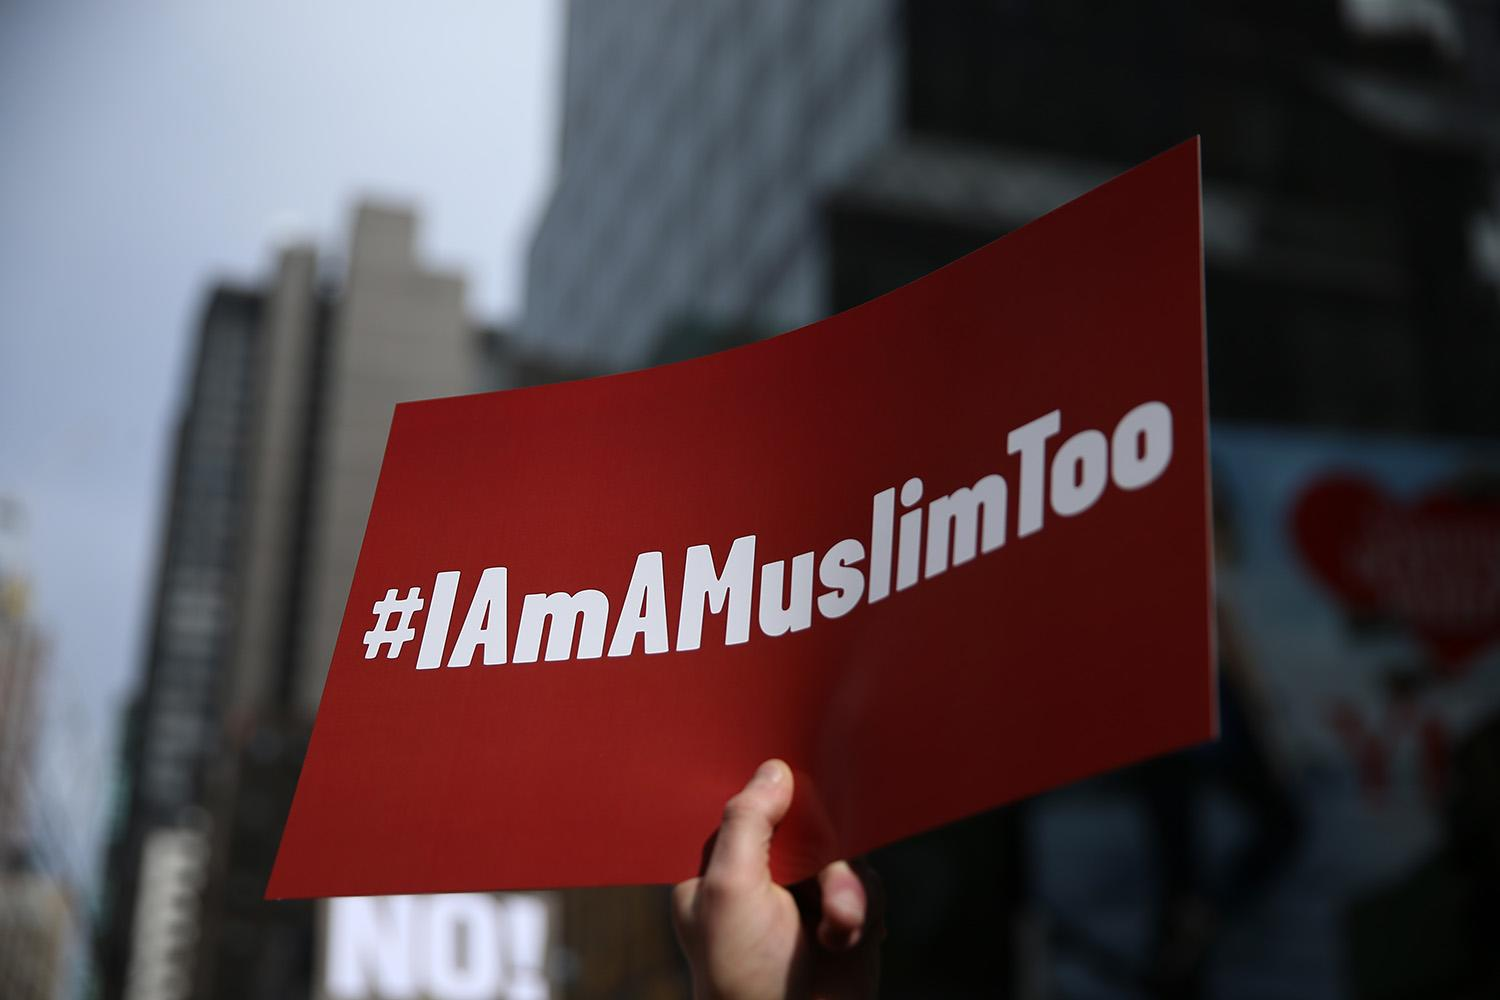 "<p>A protester holds a sign at the ""I am a Muslim too"" rally at Times Square in New York City on Feb. 19, 2017. (Gordon Donovan/Yahoo News) </p>"